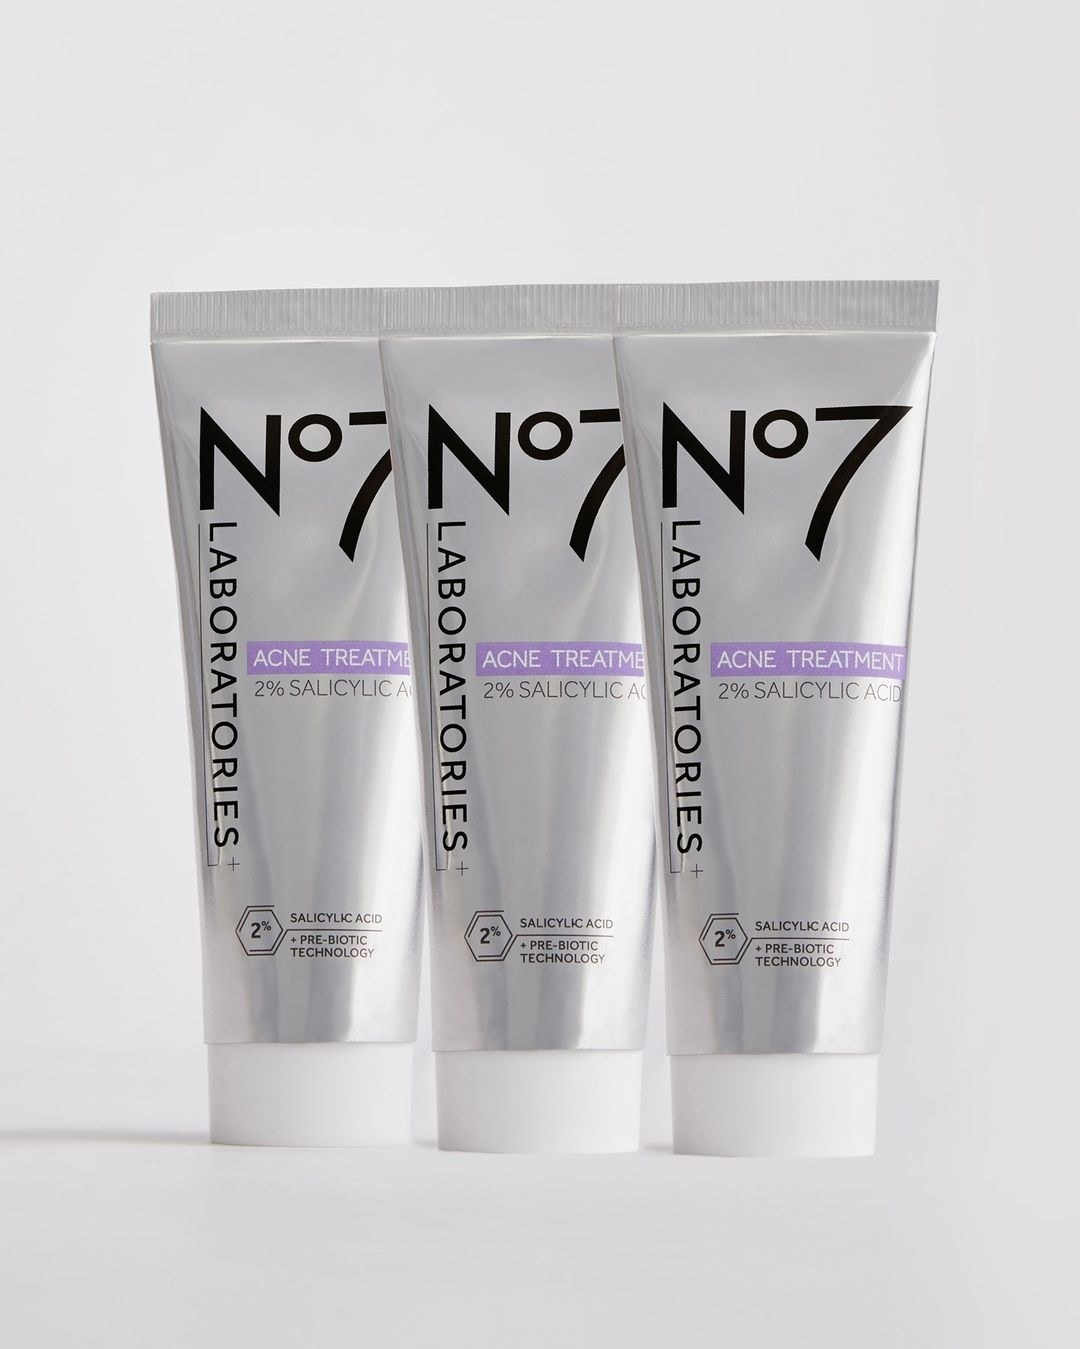 three tubes of No 7 acne treatment next to each other